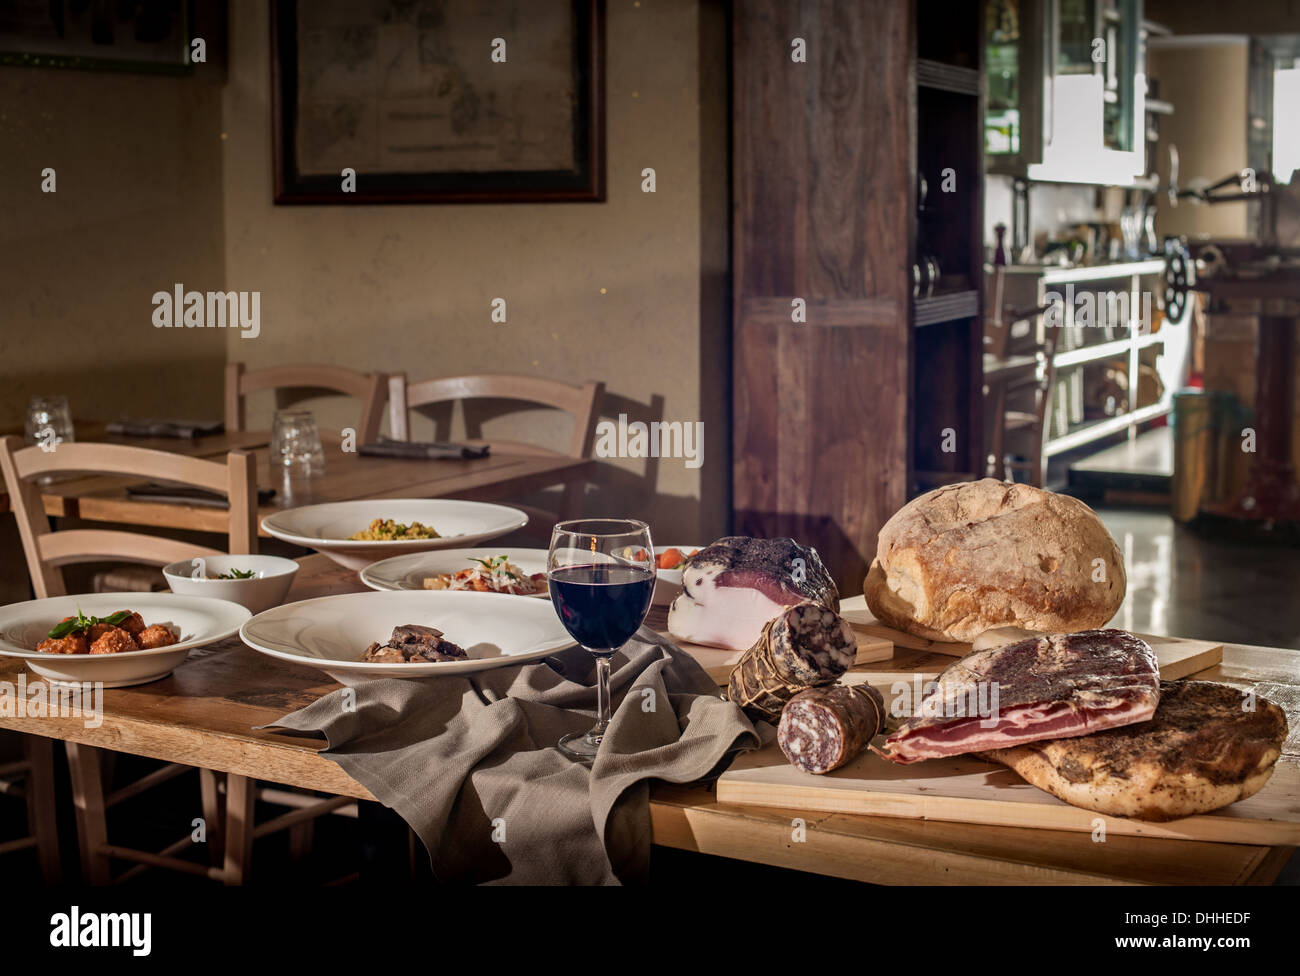 Rustic Display Of Traditional Italian Food In Restaurant Stock Photo Alamy